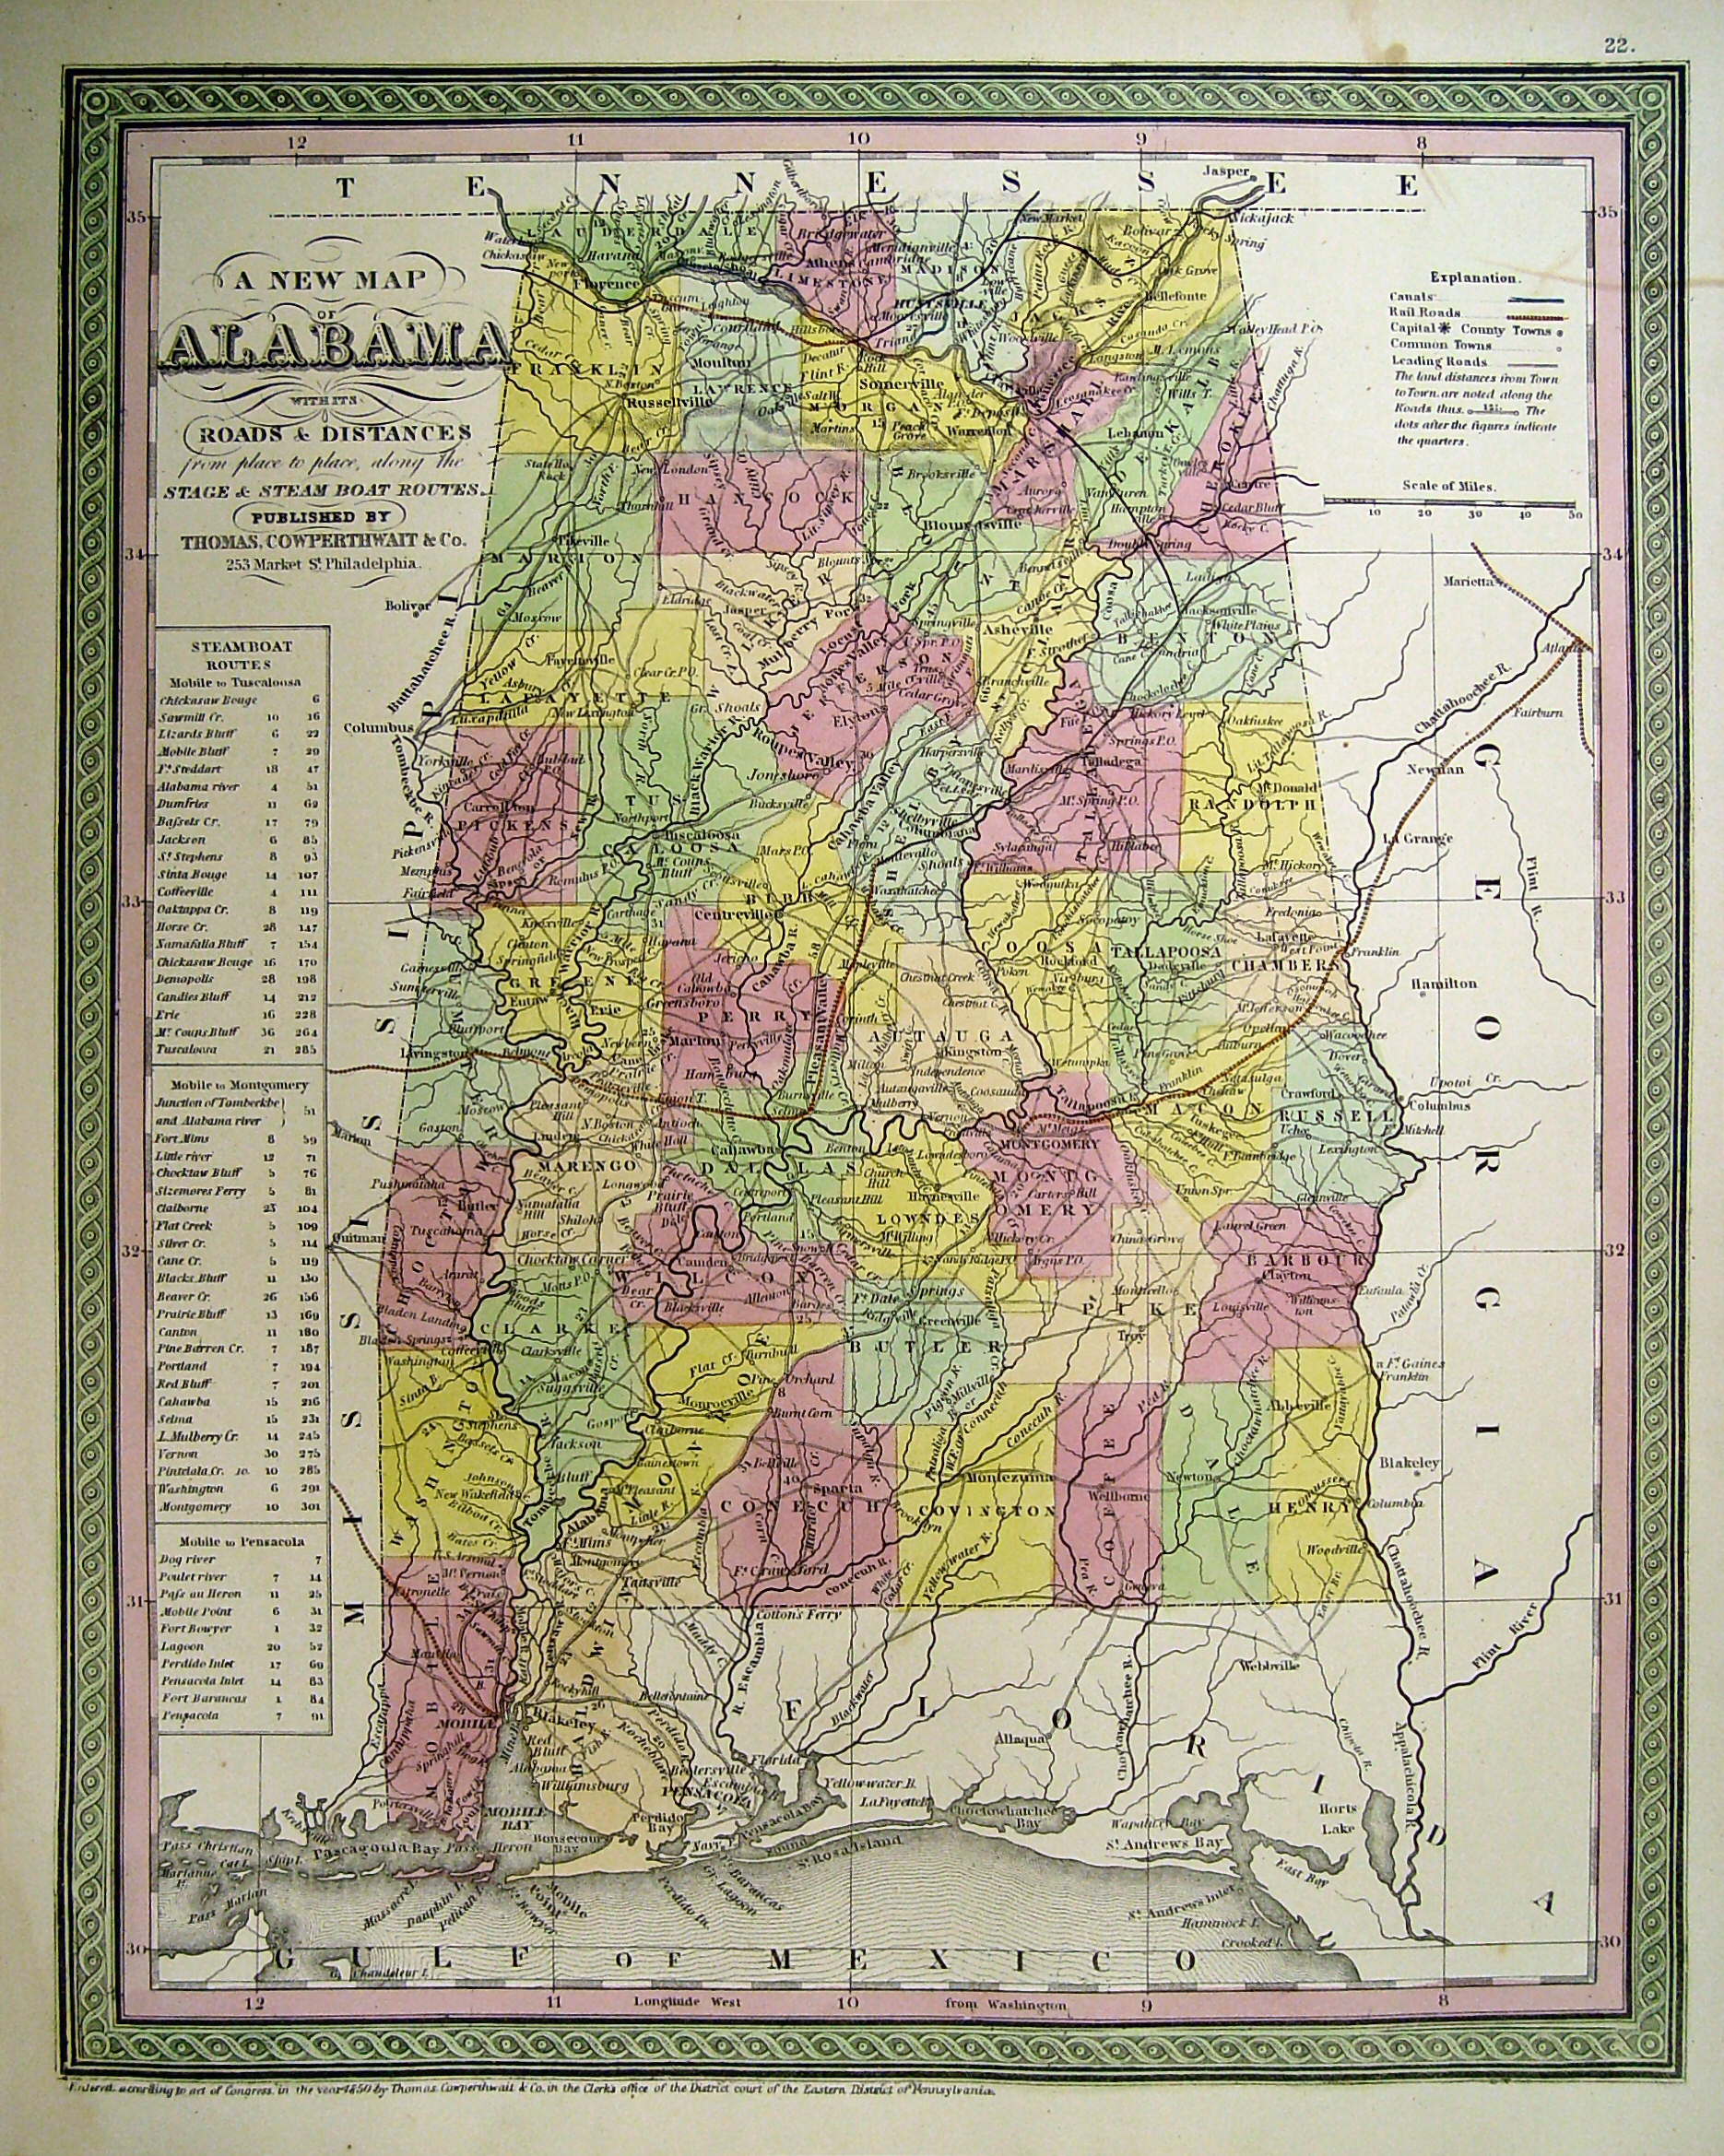 Alabama Maps. Alabama Digital Map Library. Table of Contents ...